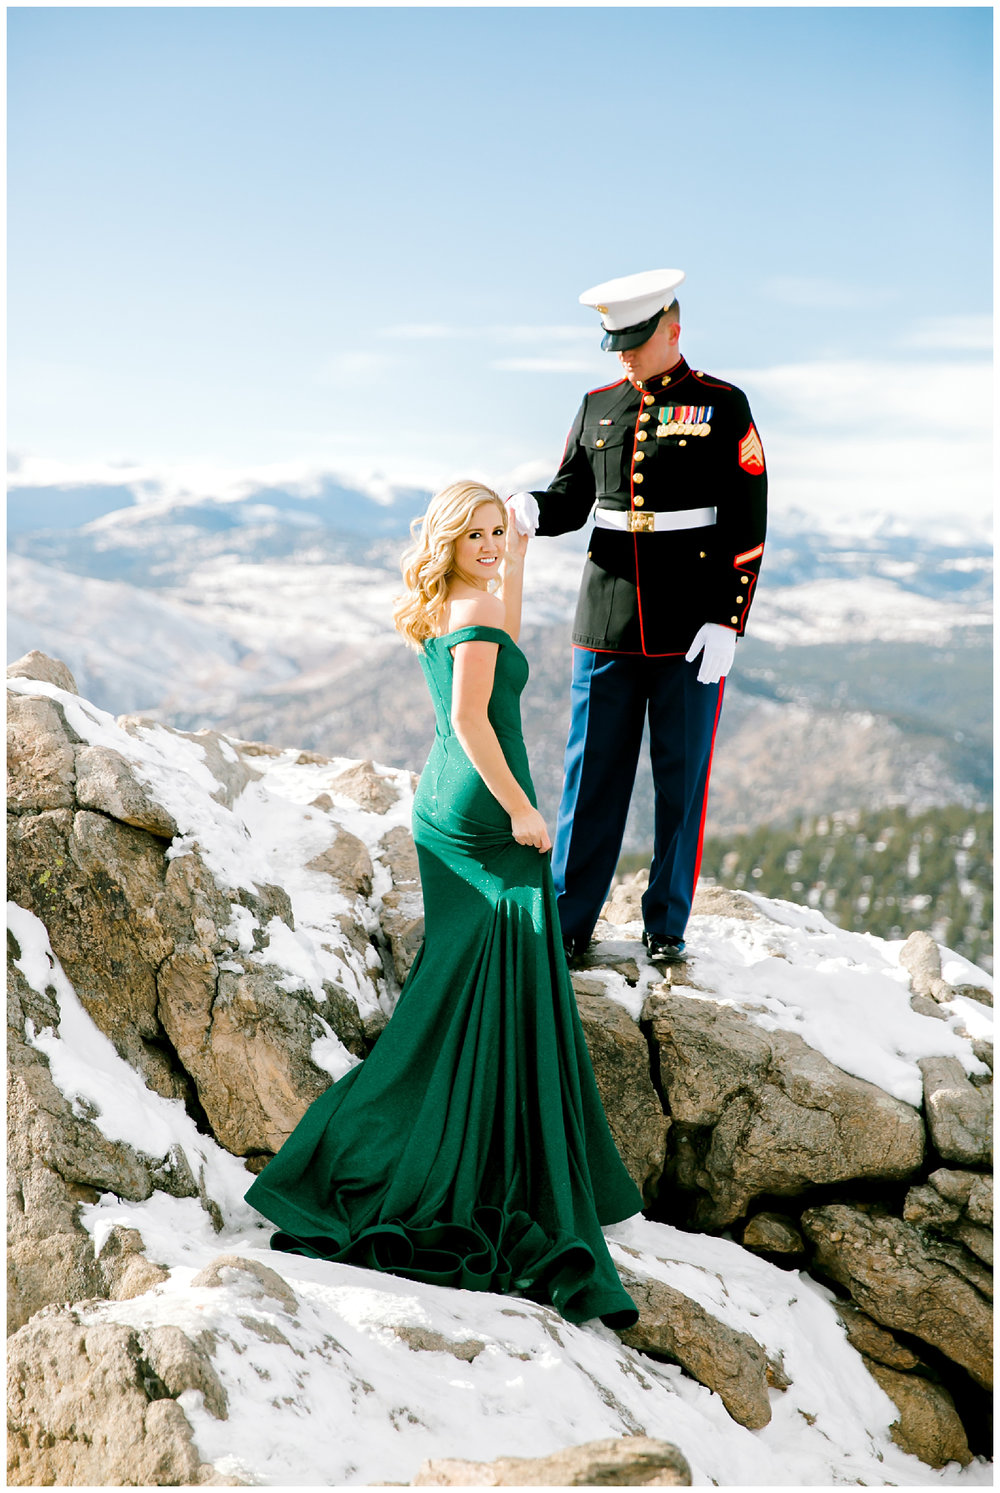 flagstaff_mountain_boulder_colorado_engagementsession_0006.jpg